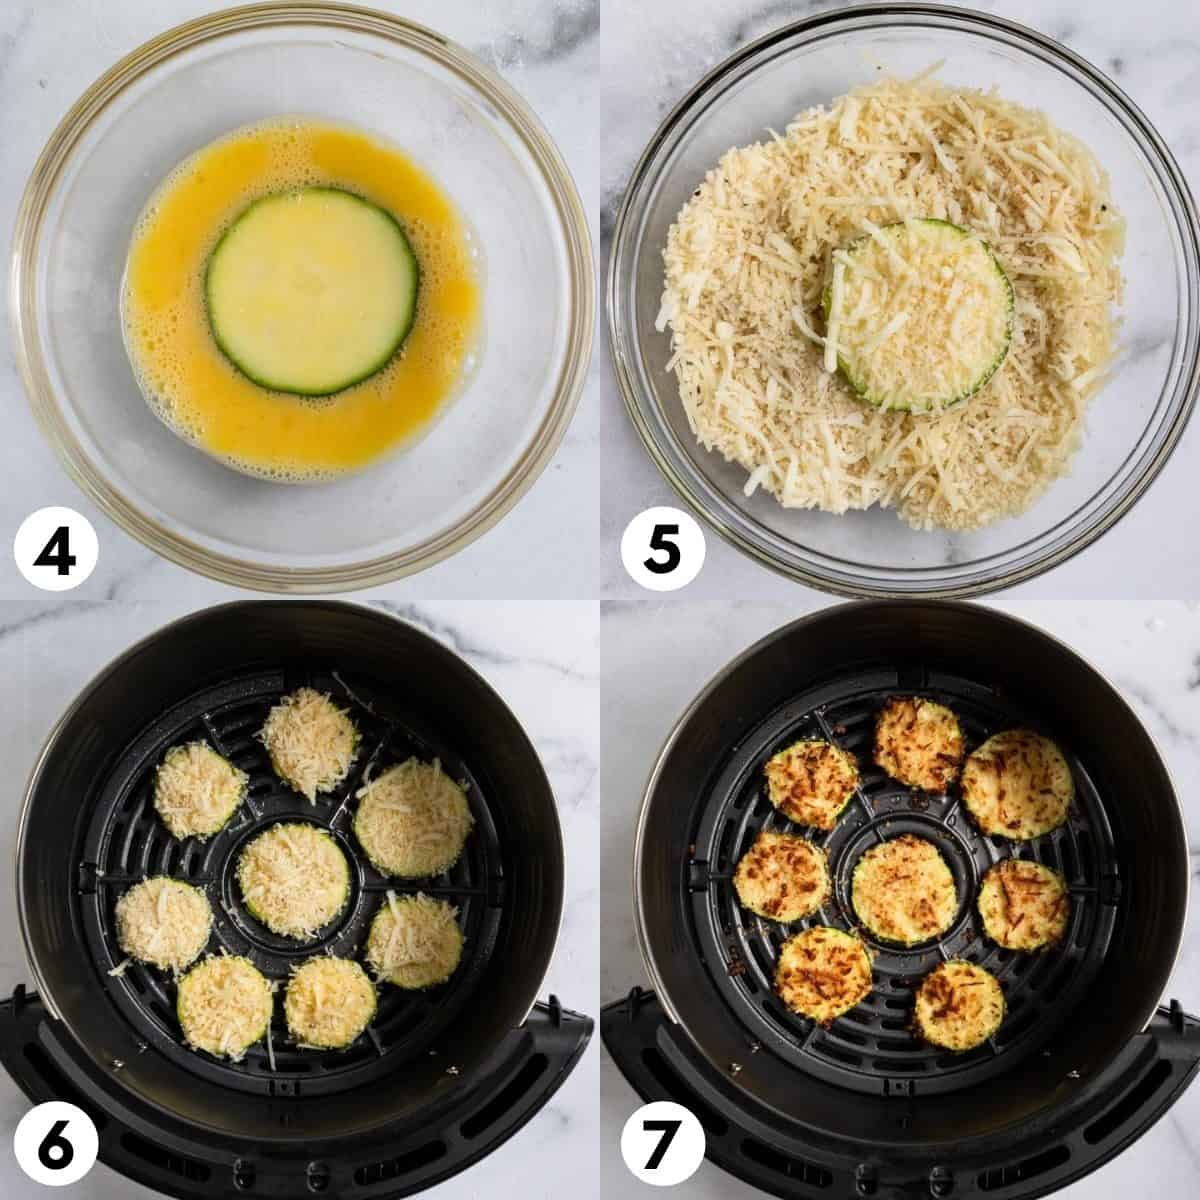 Zucchini dipped in egg and then in cheese and panko mixture.